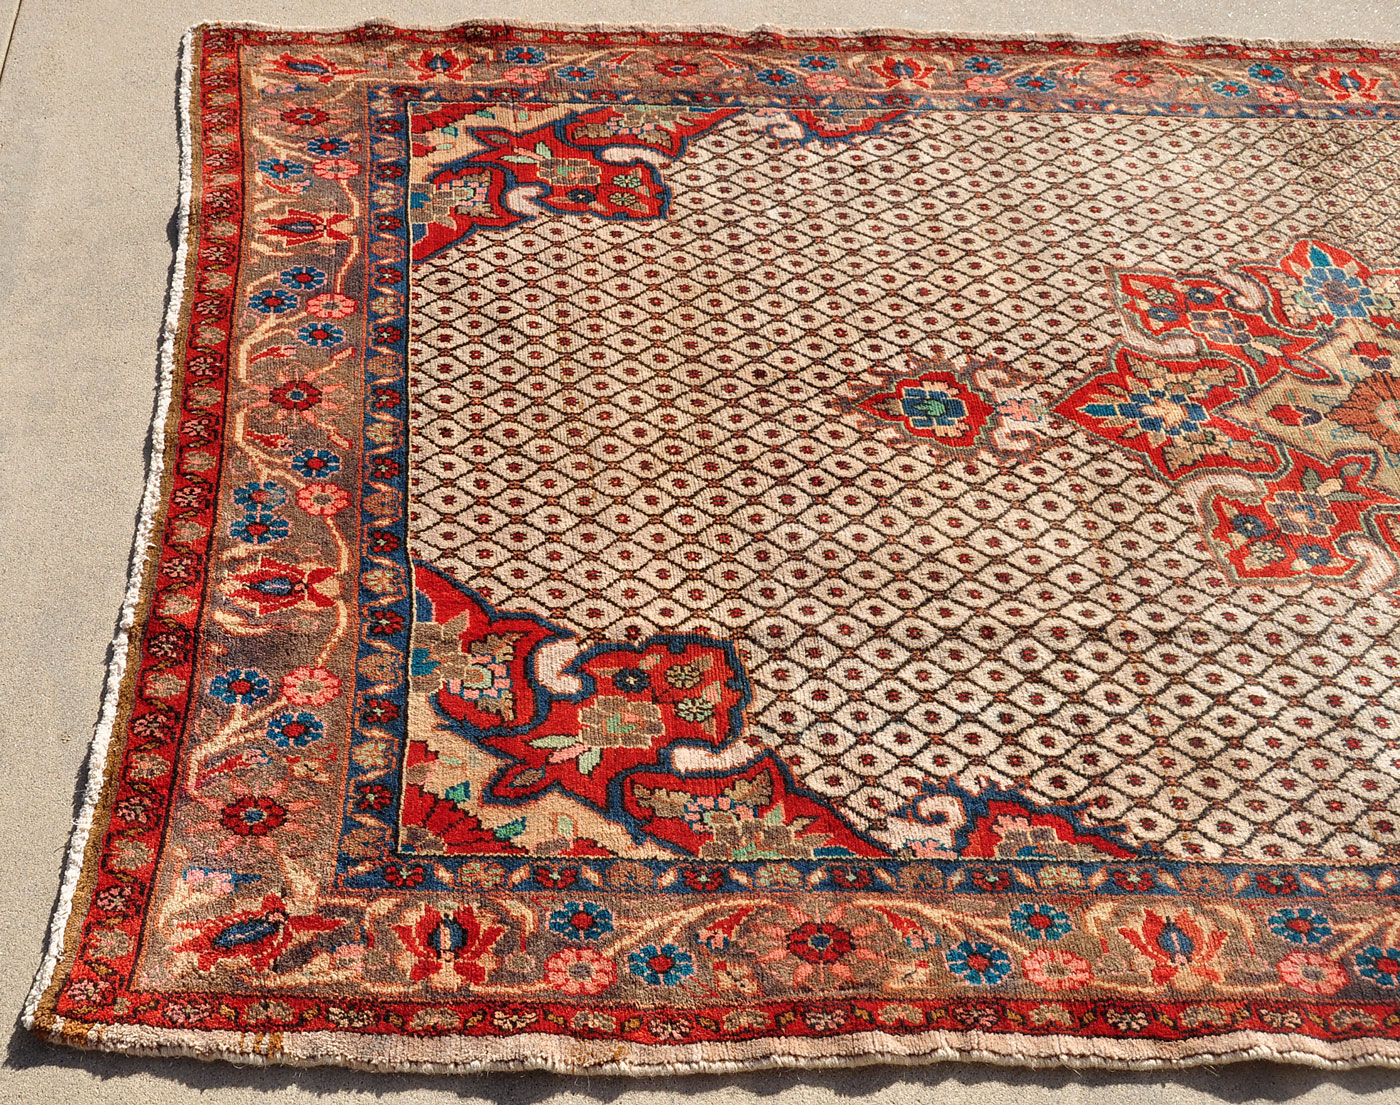 Mint Kurd Rug from Iran